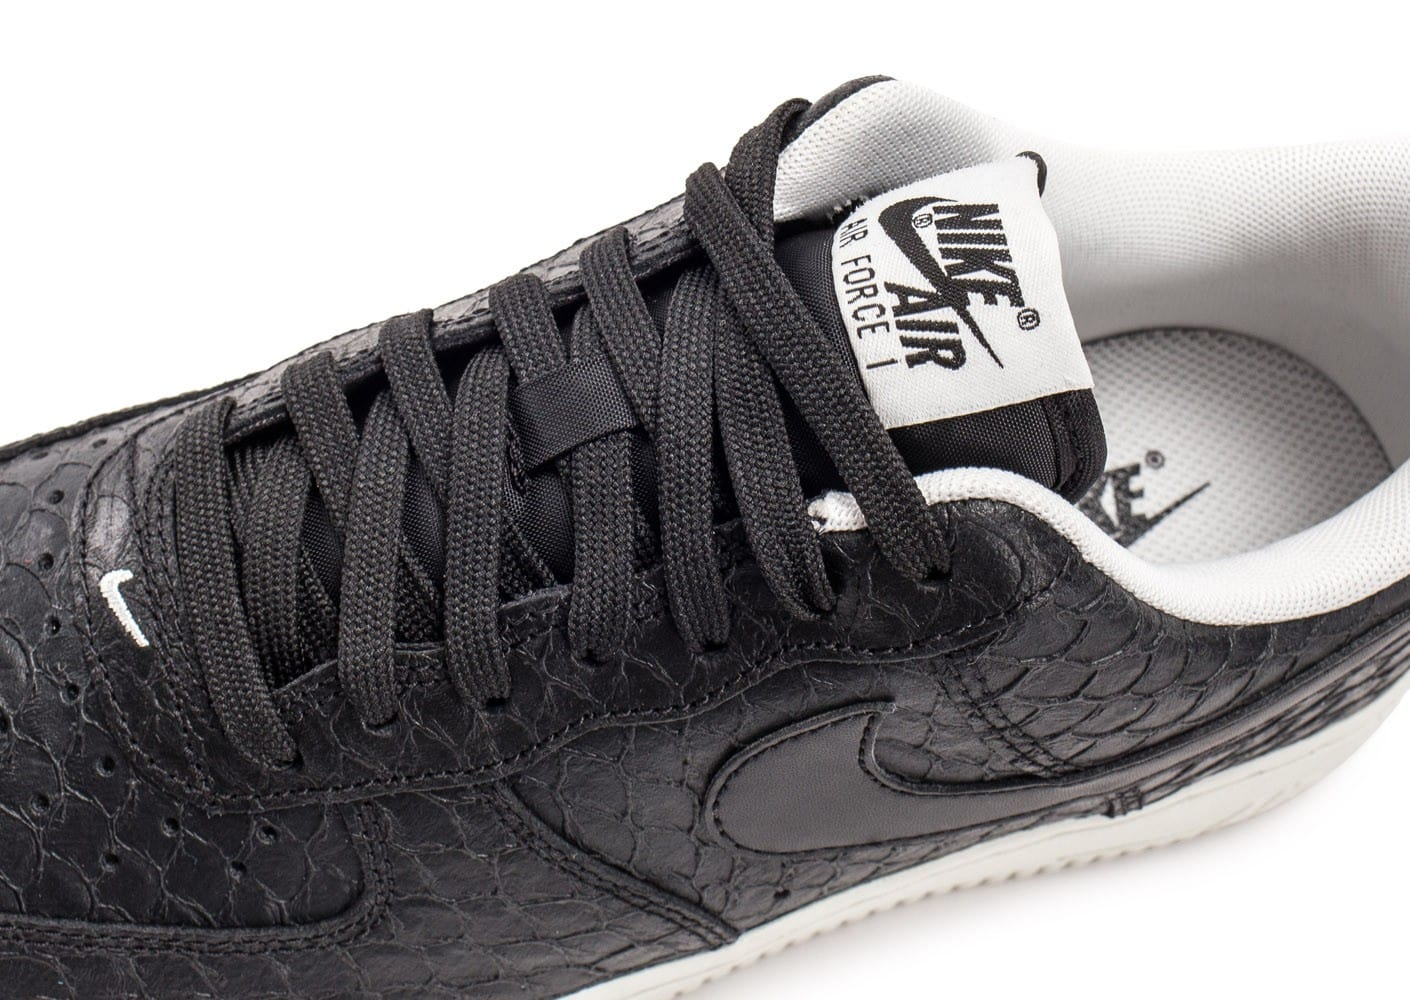 Nike Air Force 1 07 LV8 Snake noire Chaussures Baskets